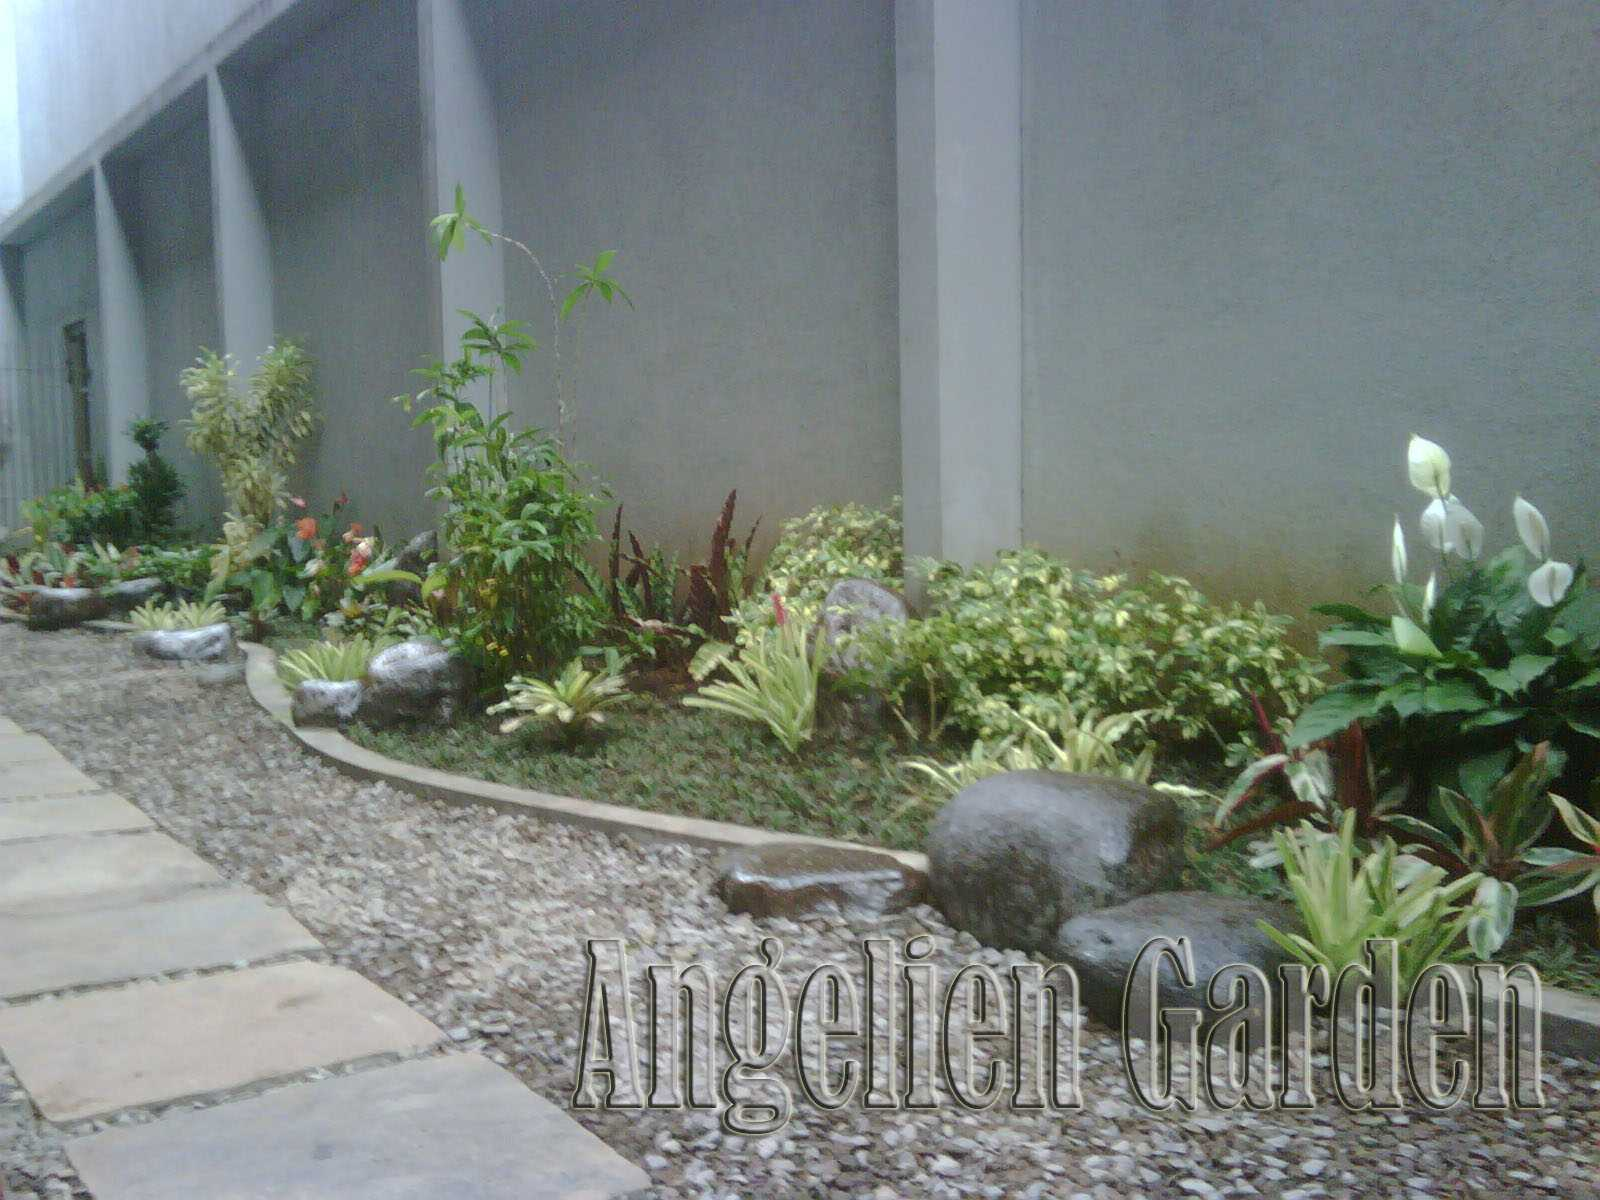 Reindy Dry Garden With Cave At Dago Bandung Bandung R-Patah2   28462